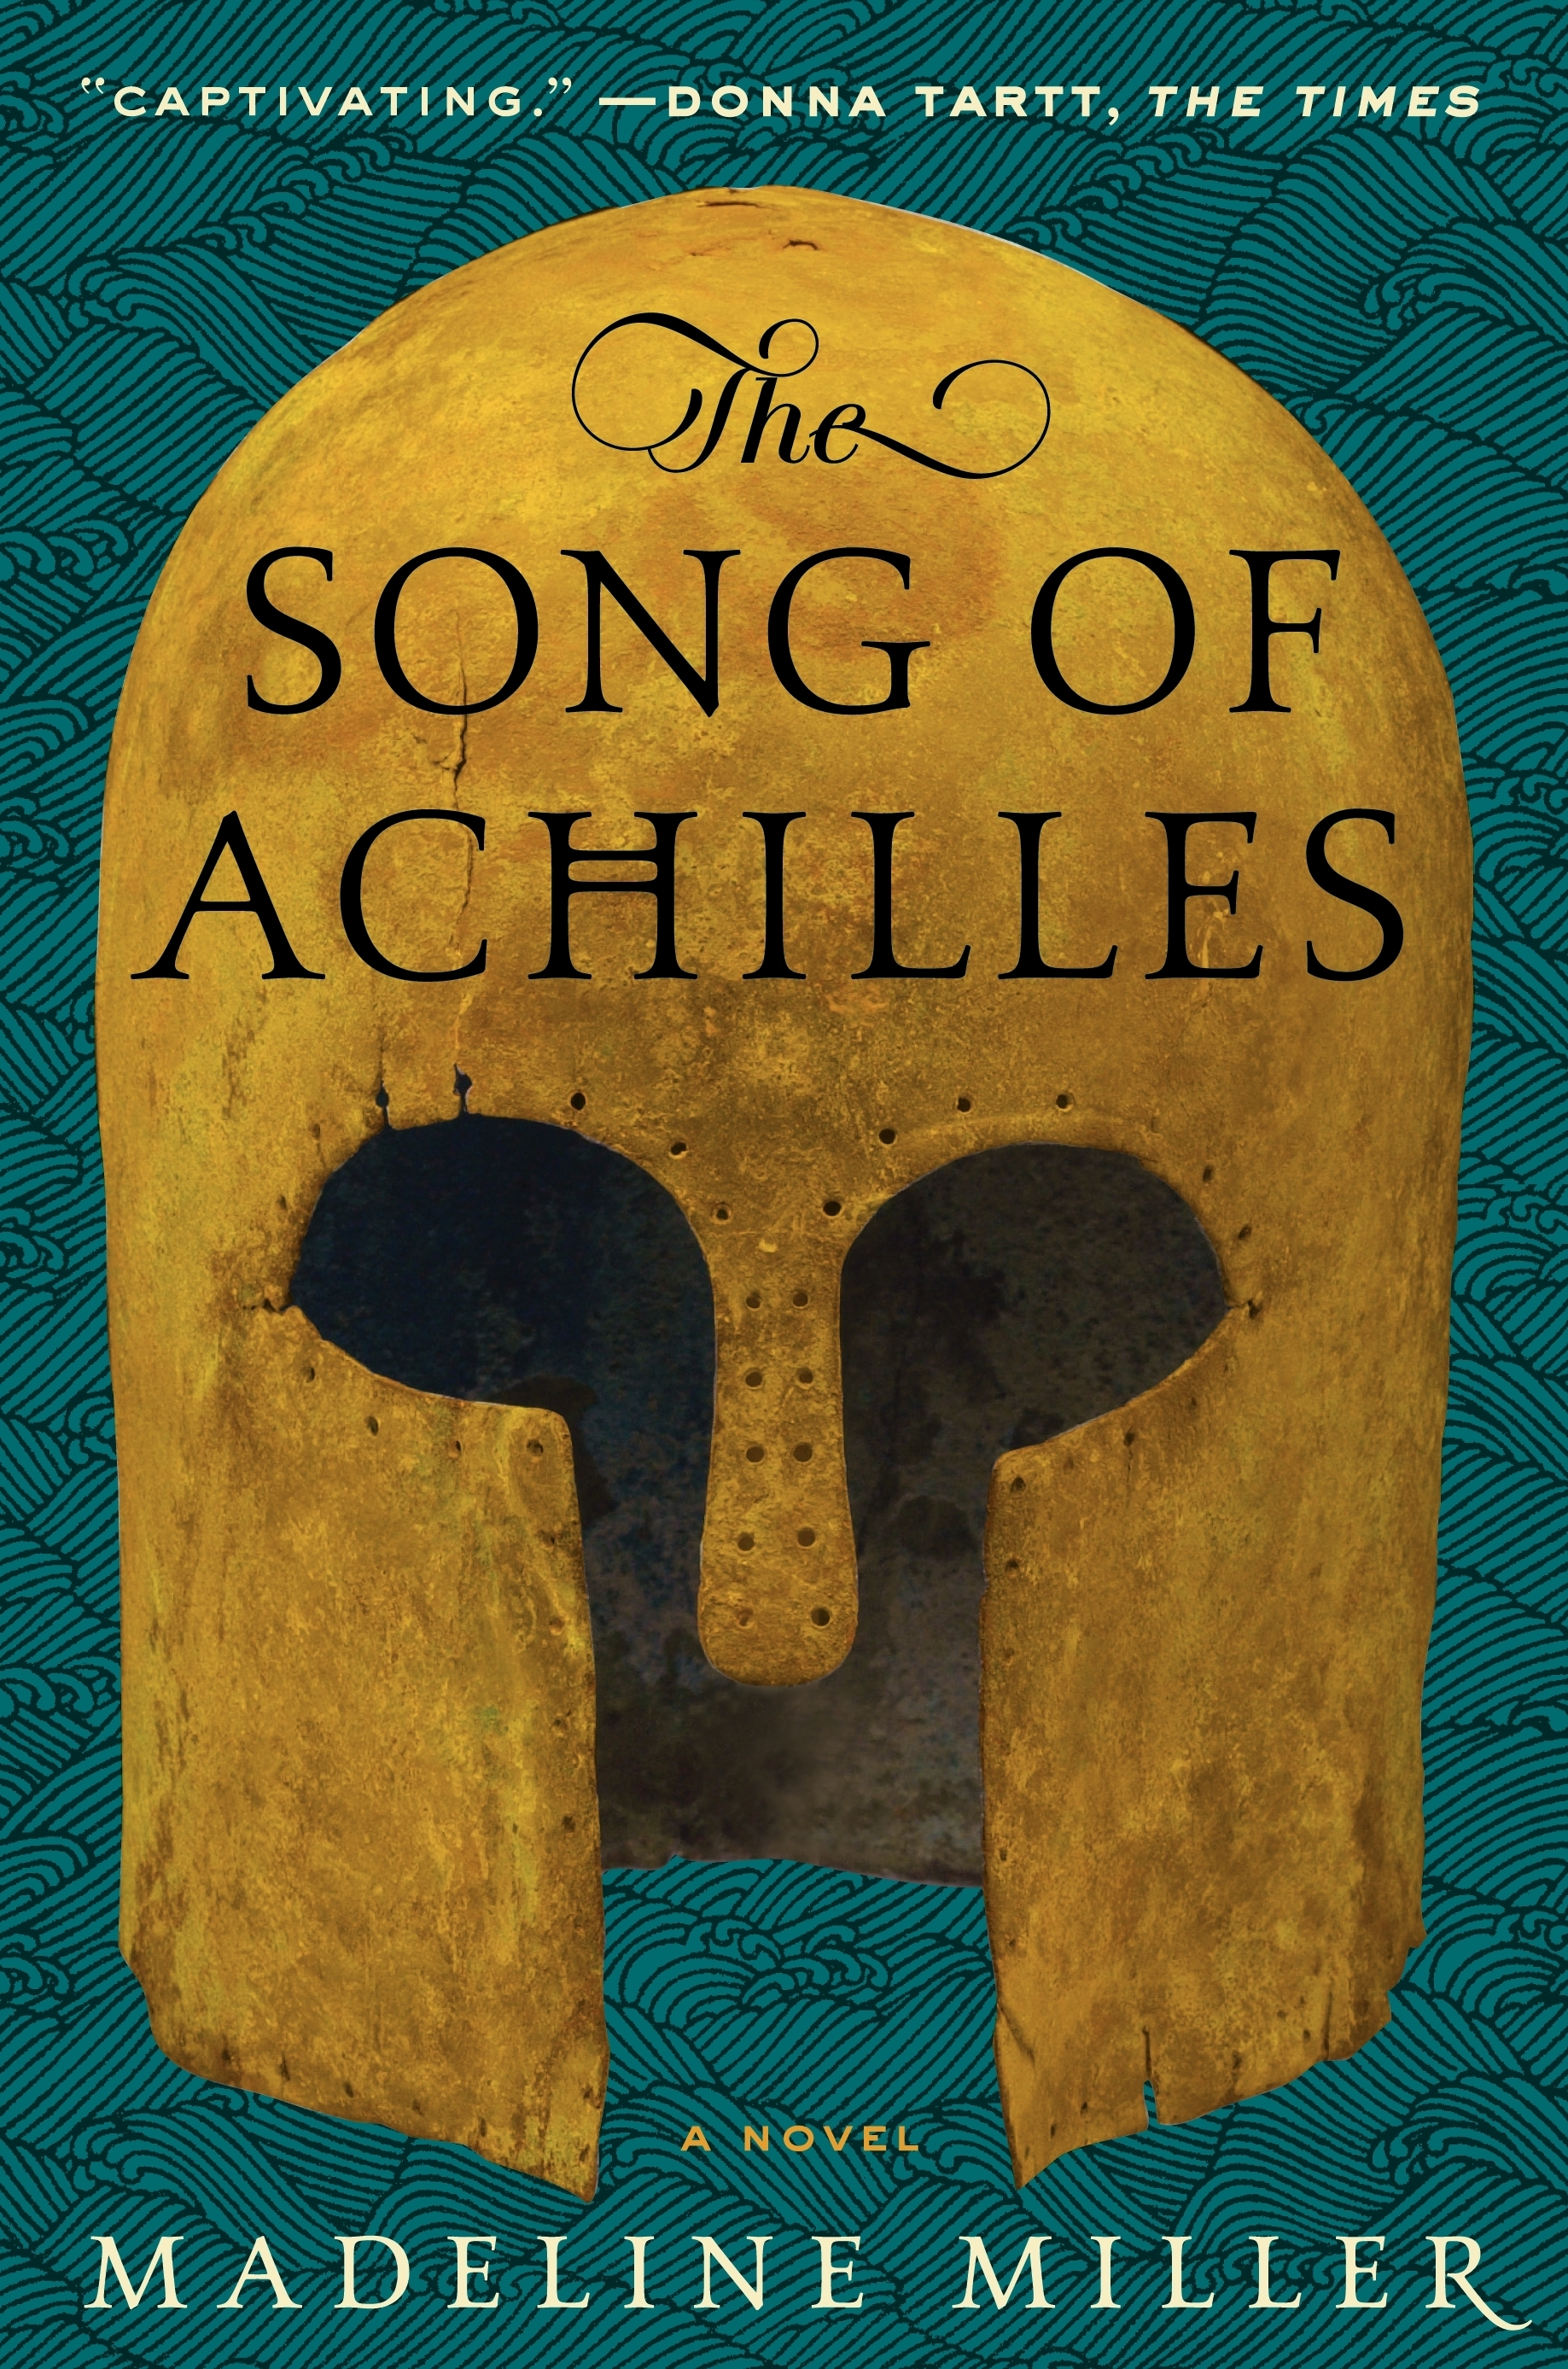 Image result for book cover song of achilles